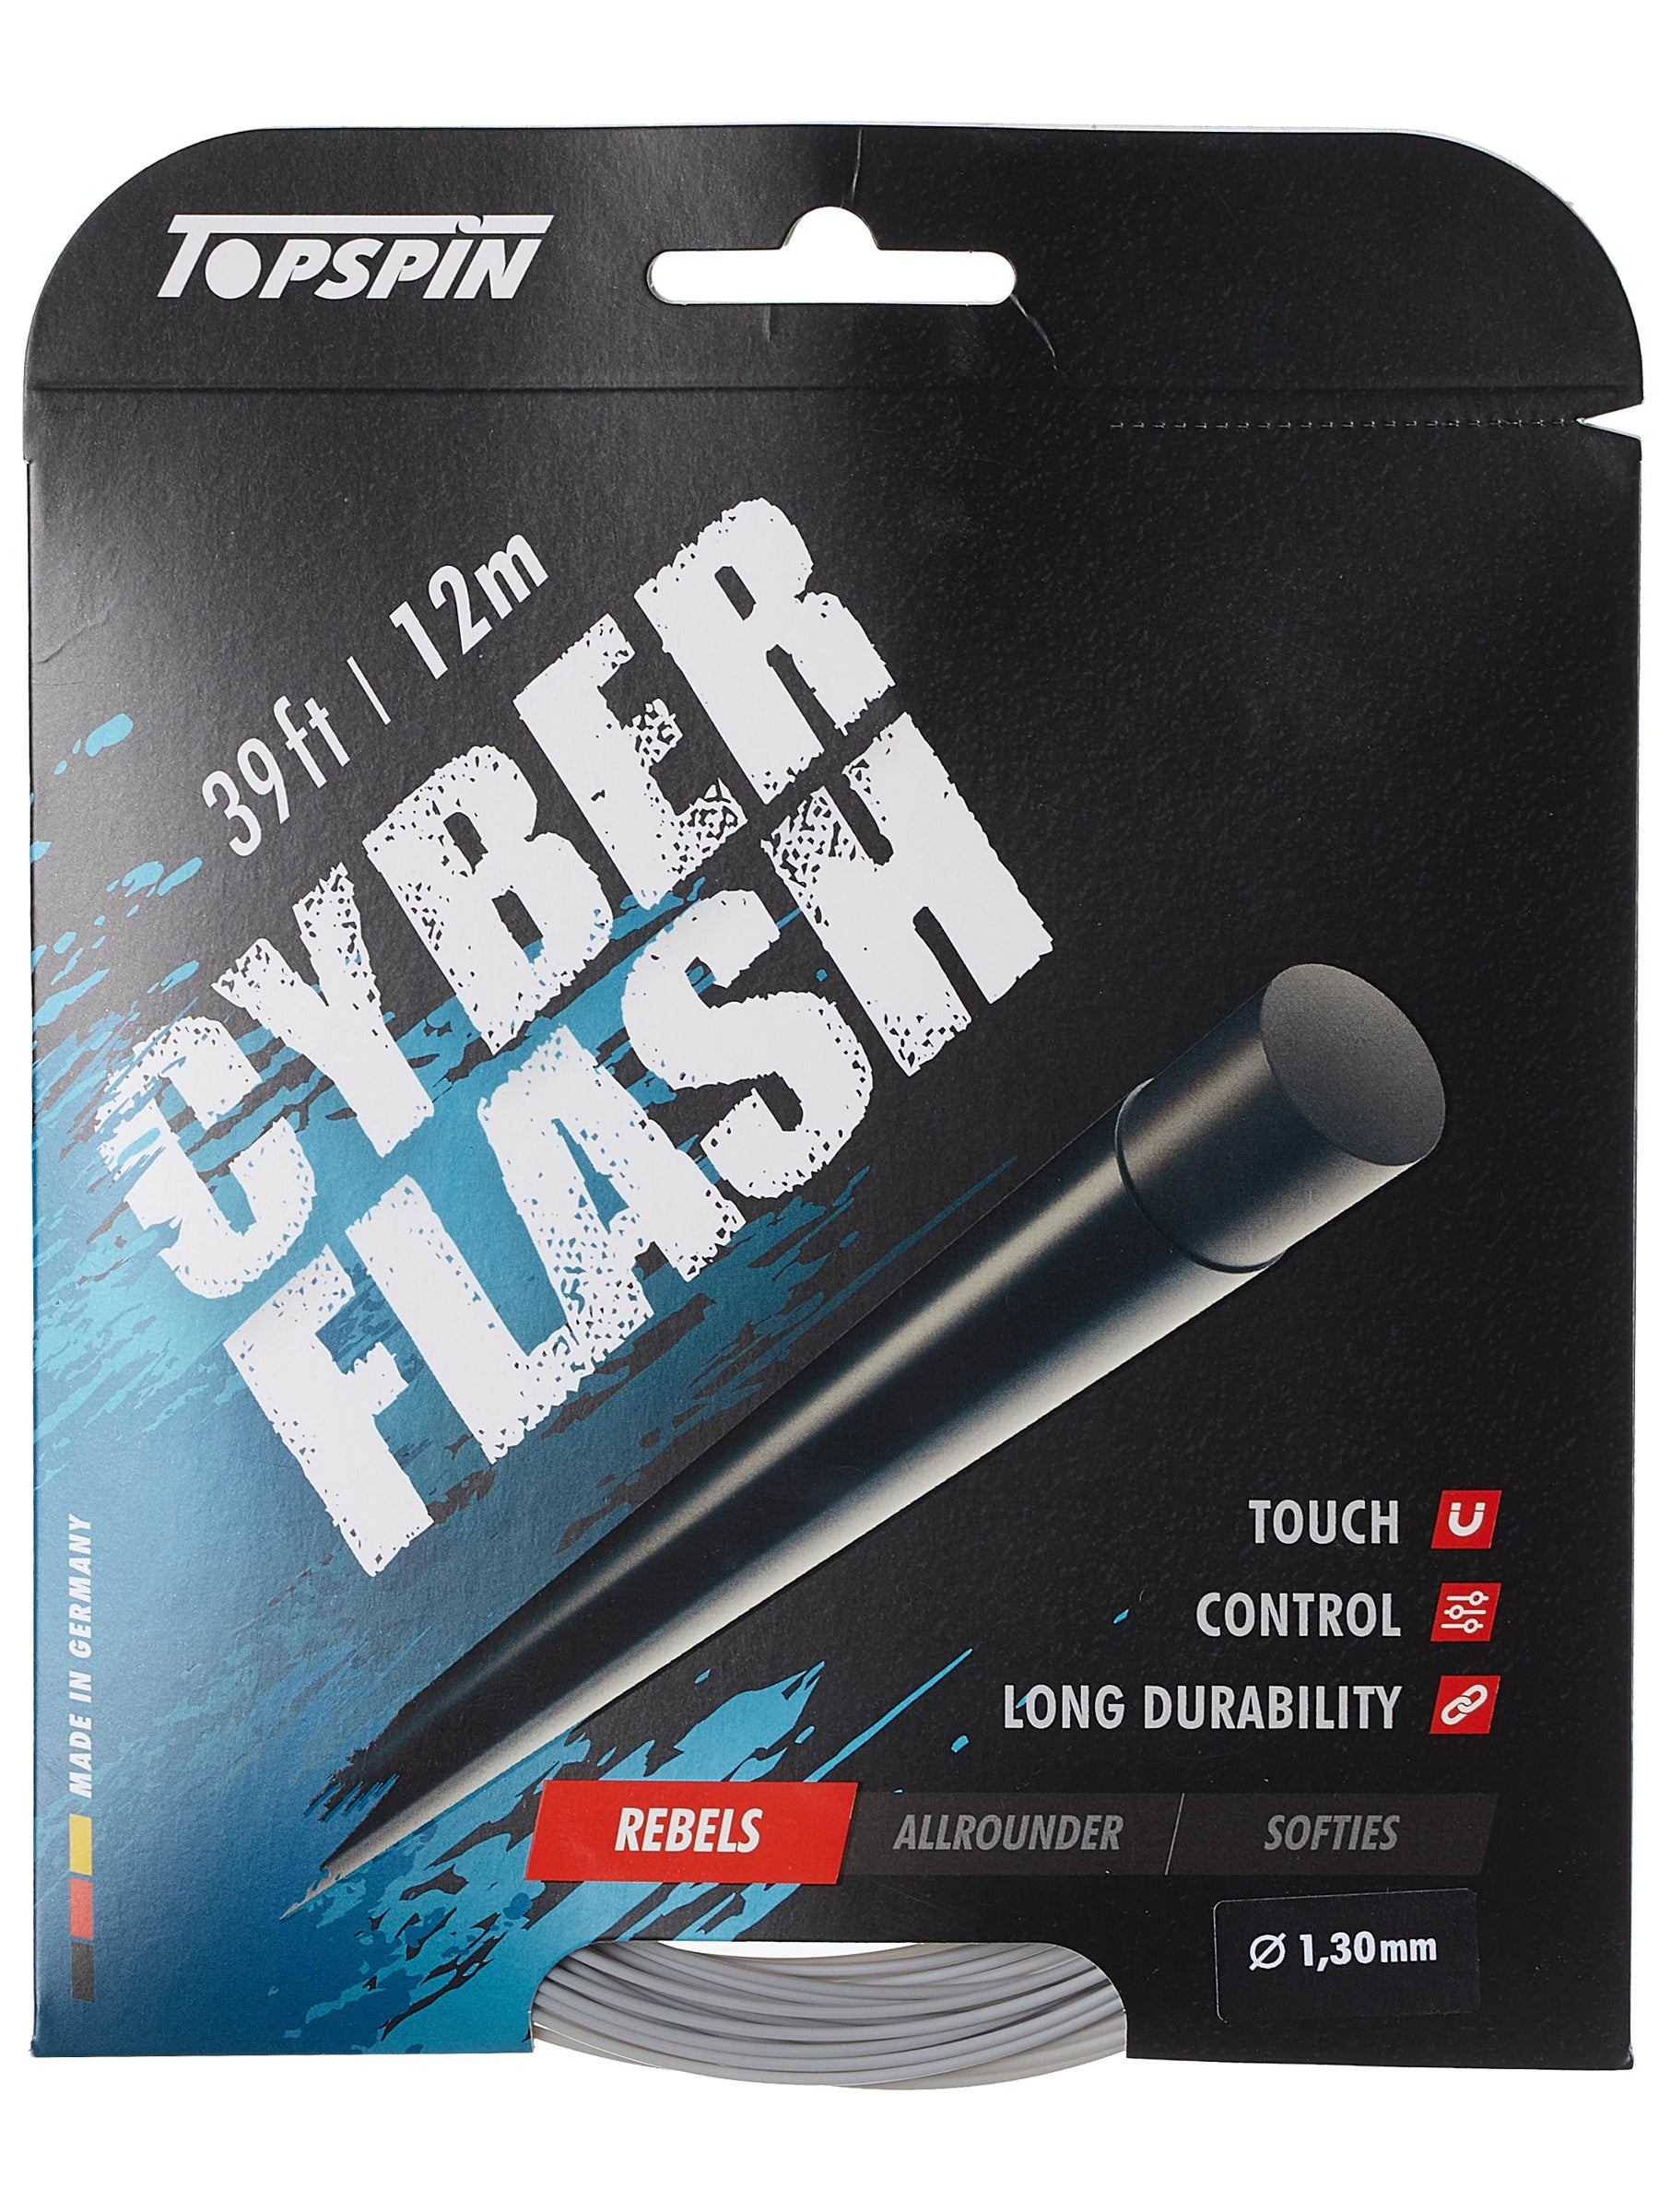 Topspin Cyber Flash String 17L (1.20)